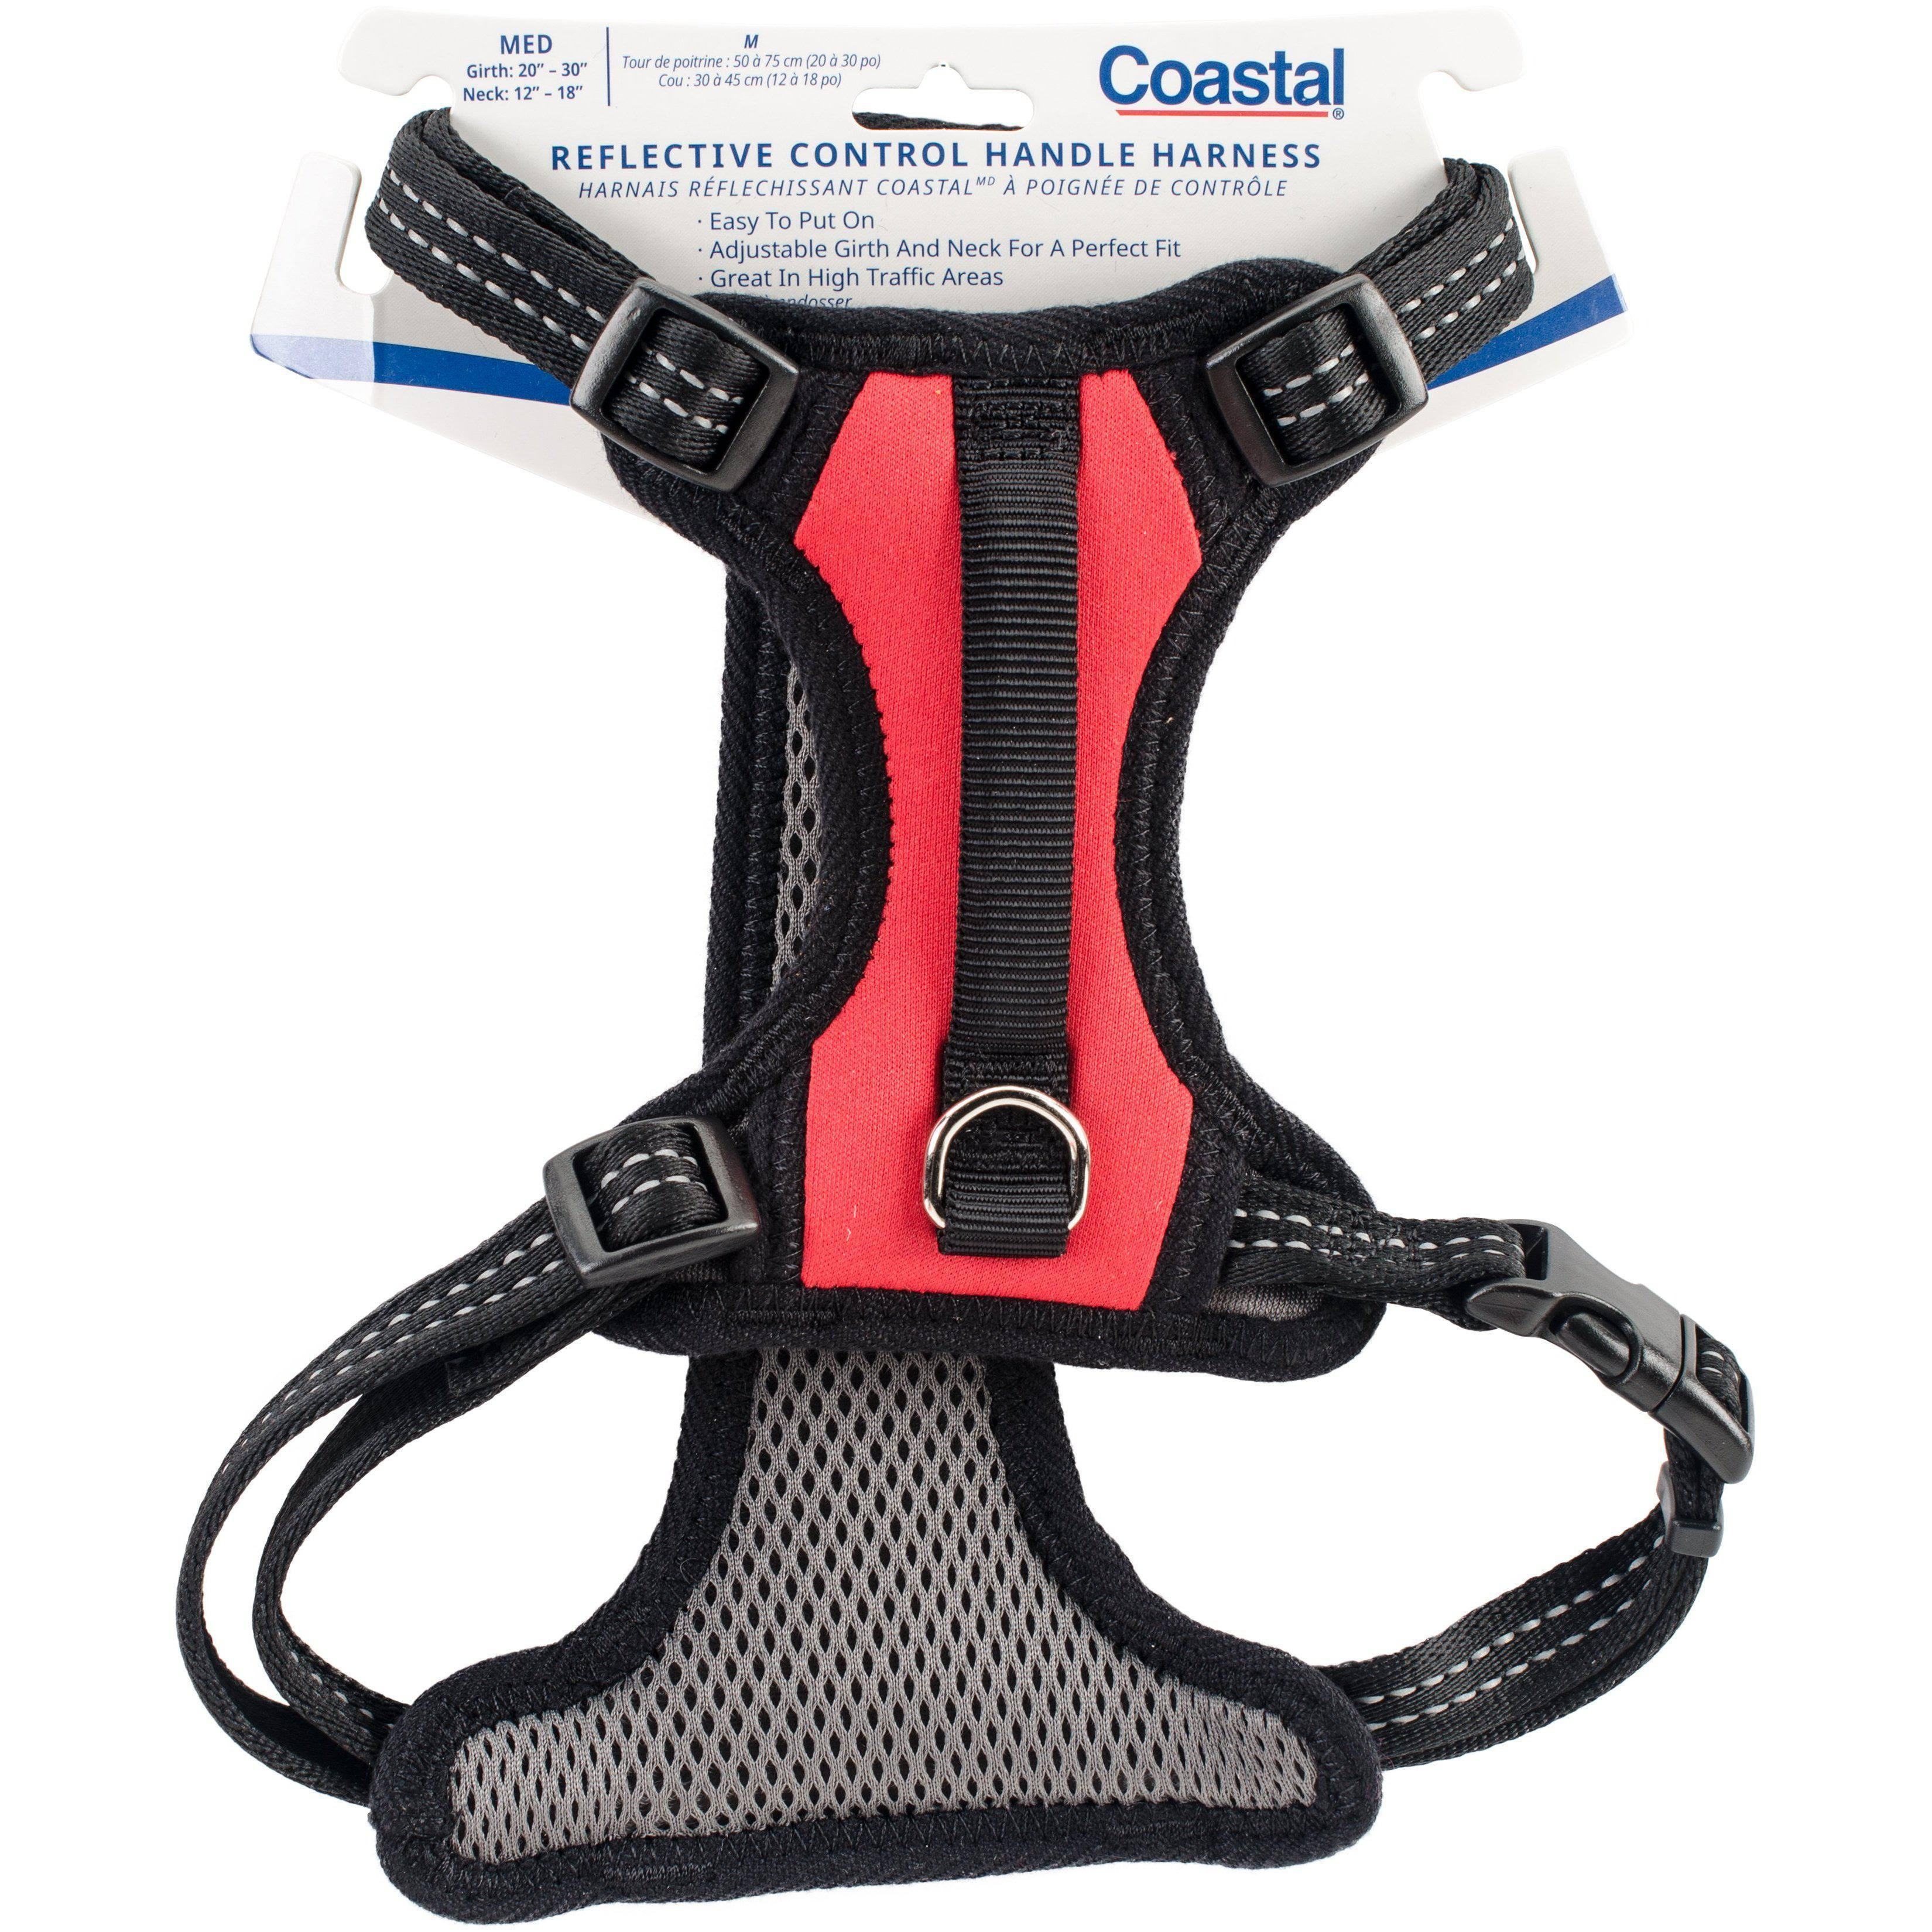 Coastal Reflective Reflective Reflective Control Handle Harness - Red, Medium